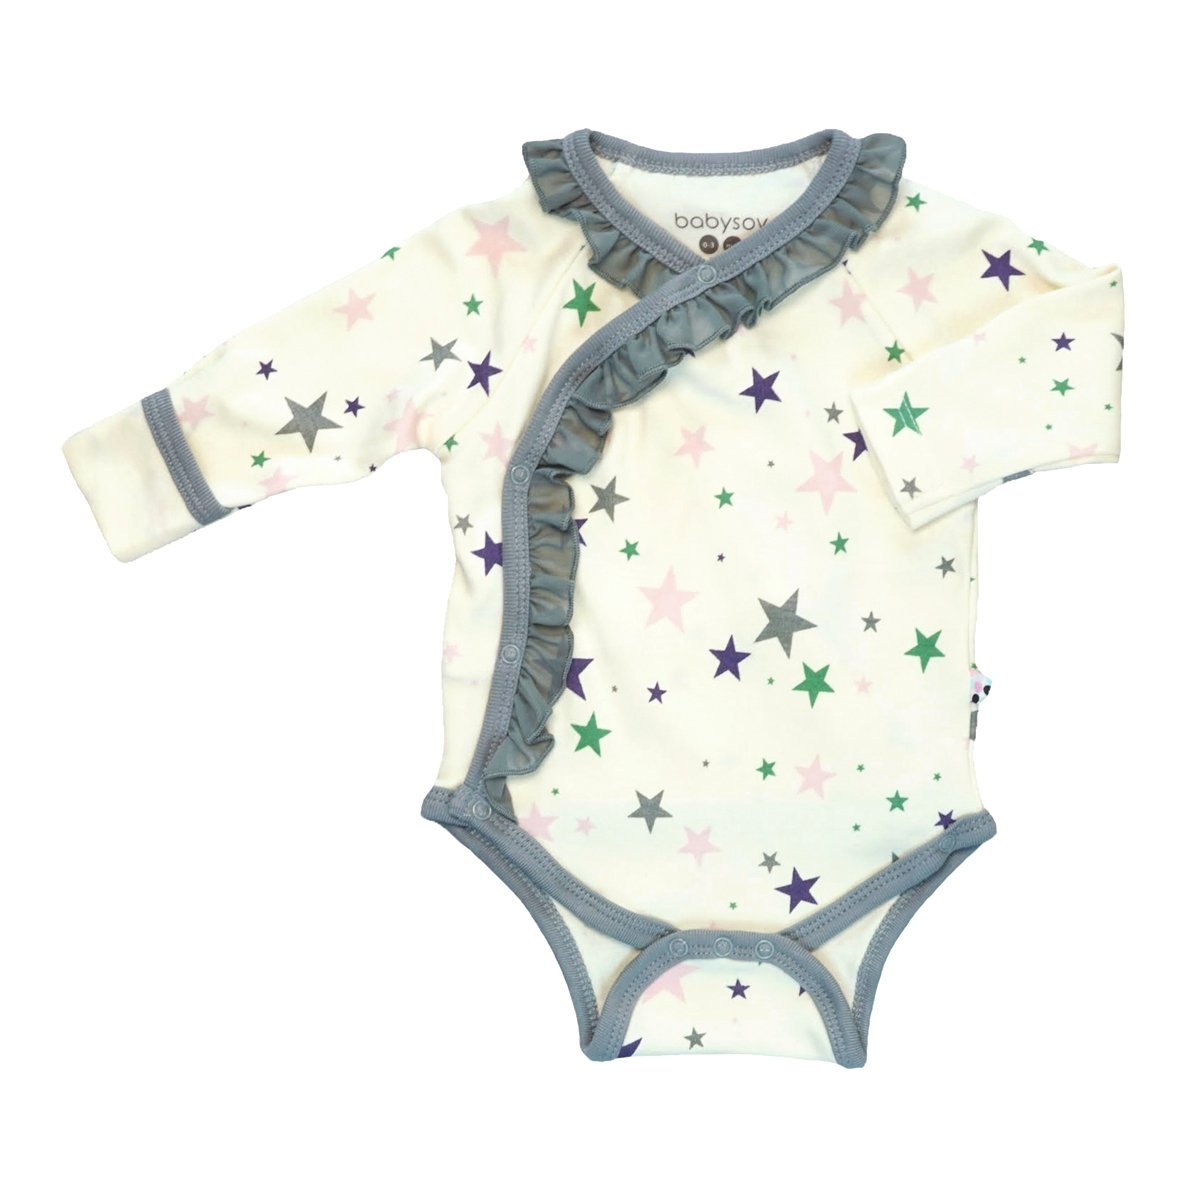 BabySoy Star Long Sleeve Ruffle Bodysuit in Thunder, 0-3 Months